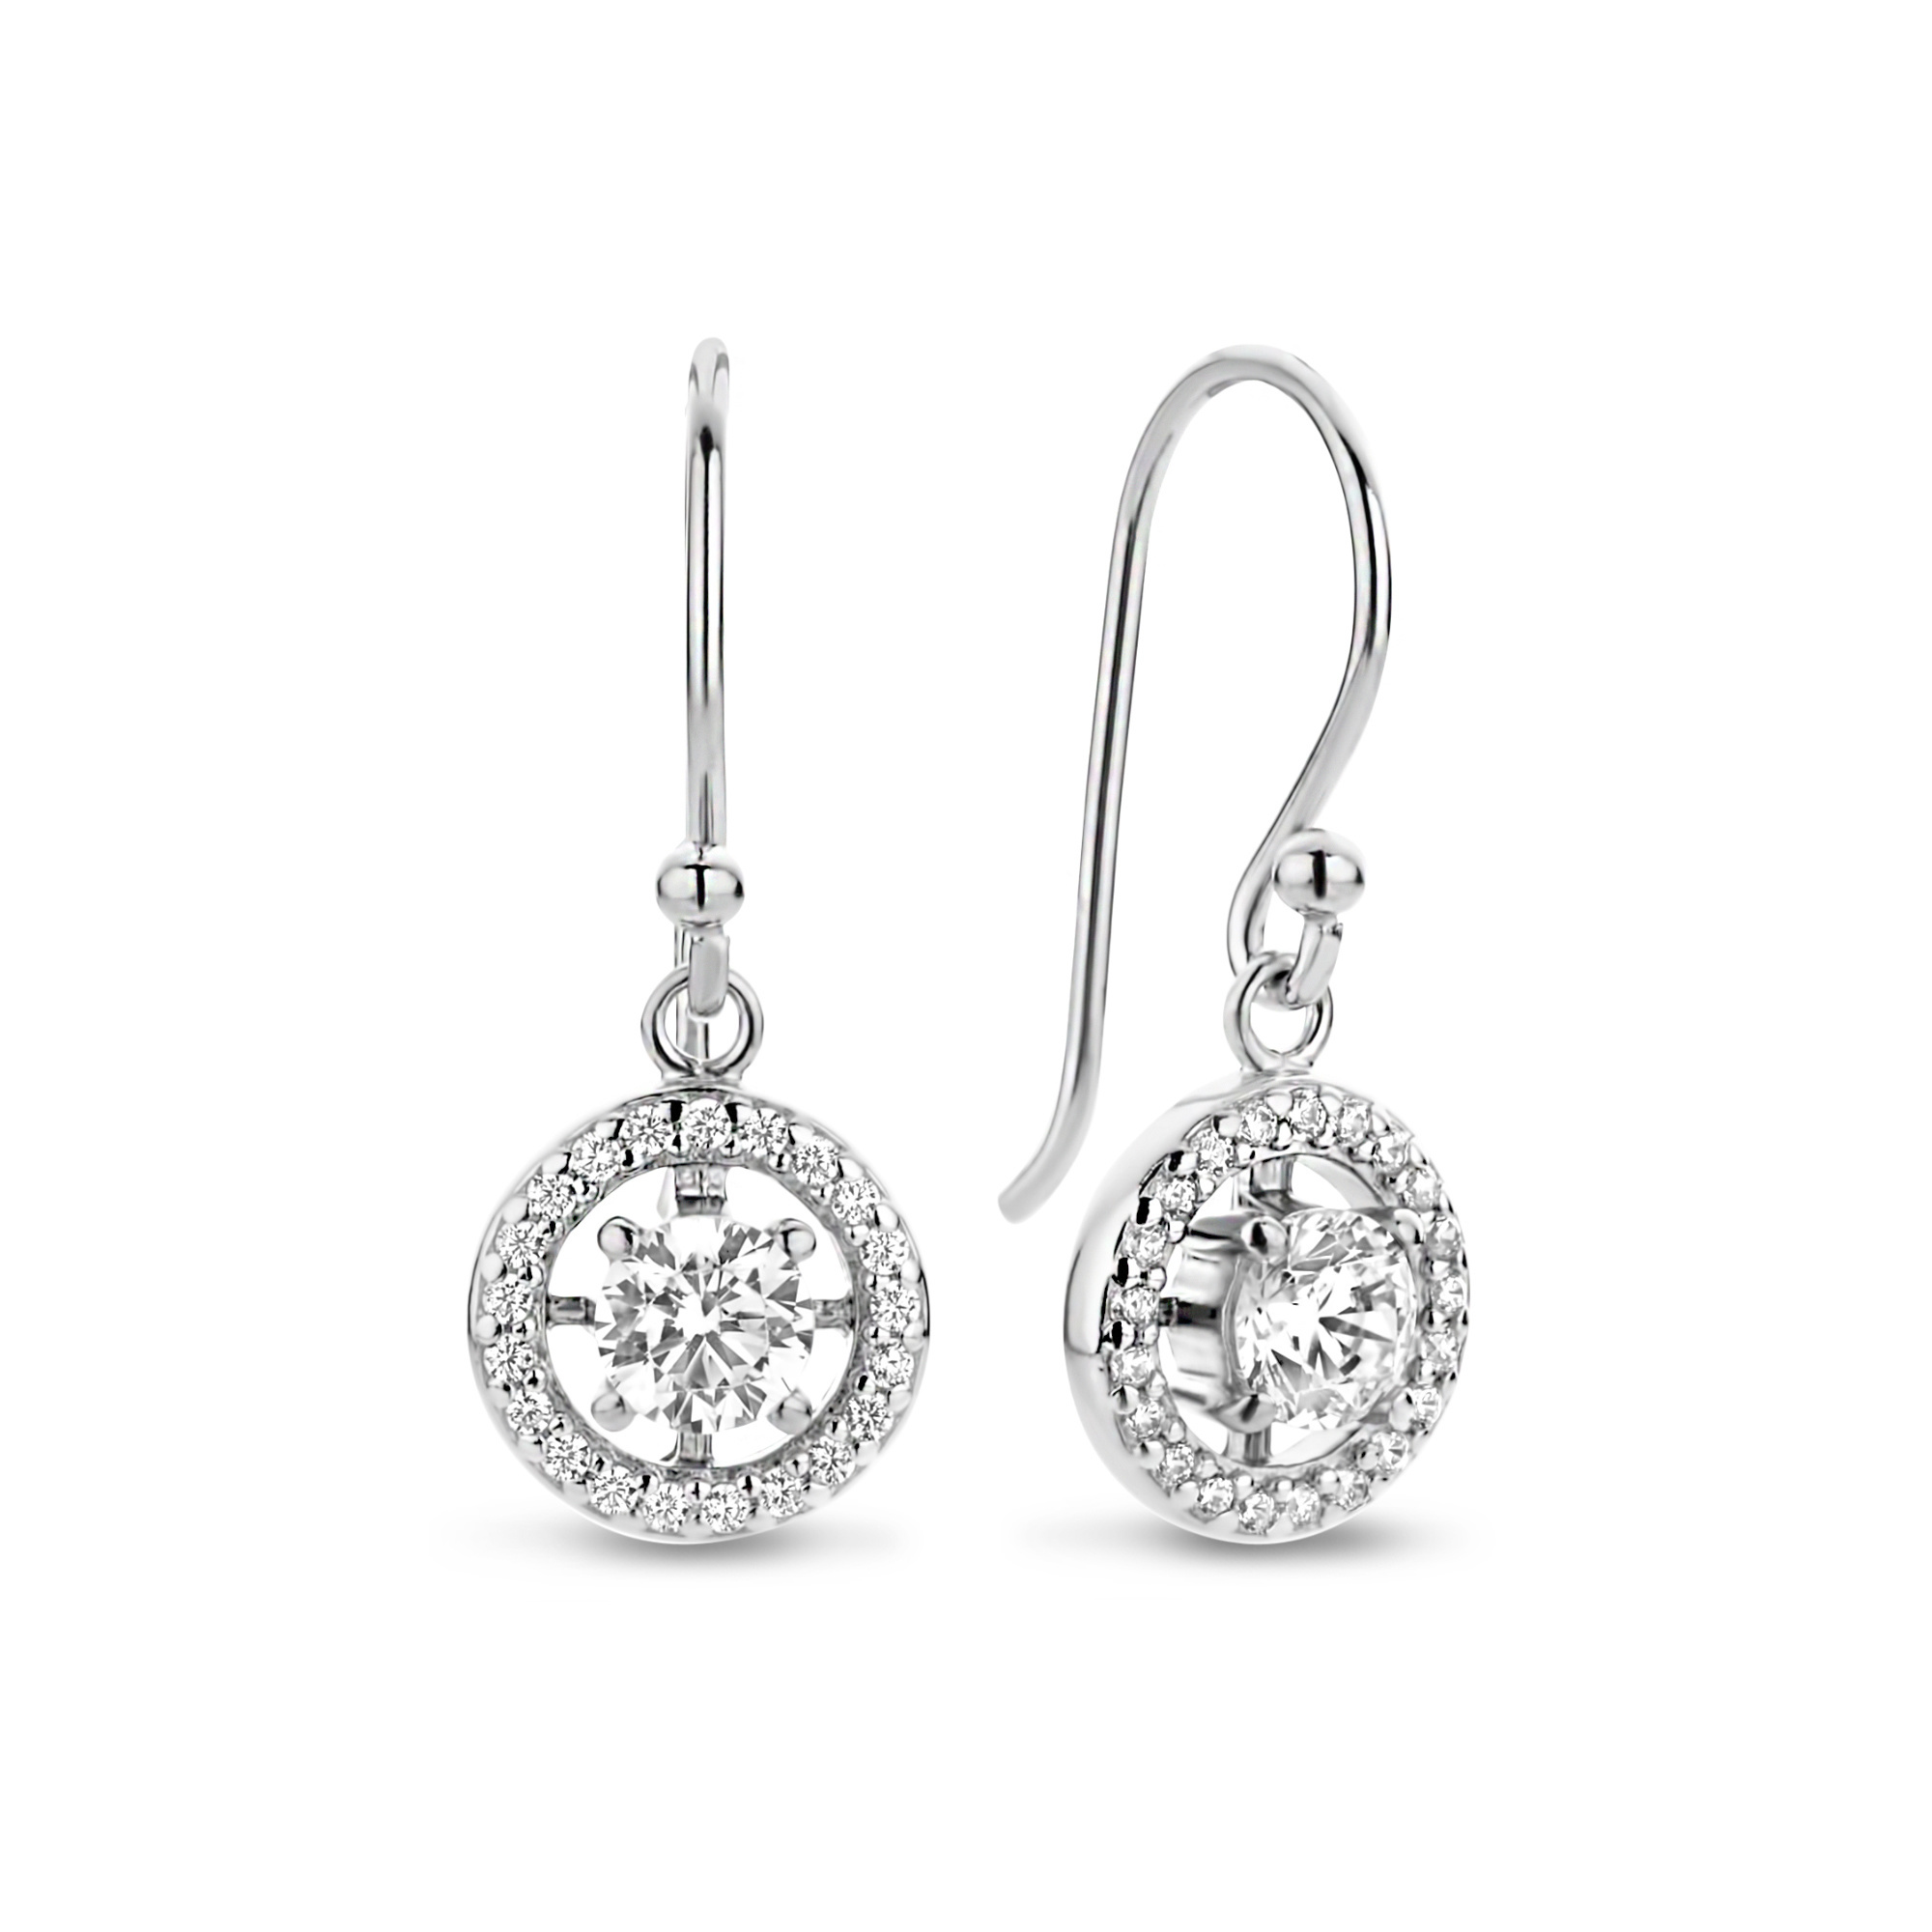 Parte di Me Sorprendimi 925 sterling silver set drop earrings, necklace and jewellery box